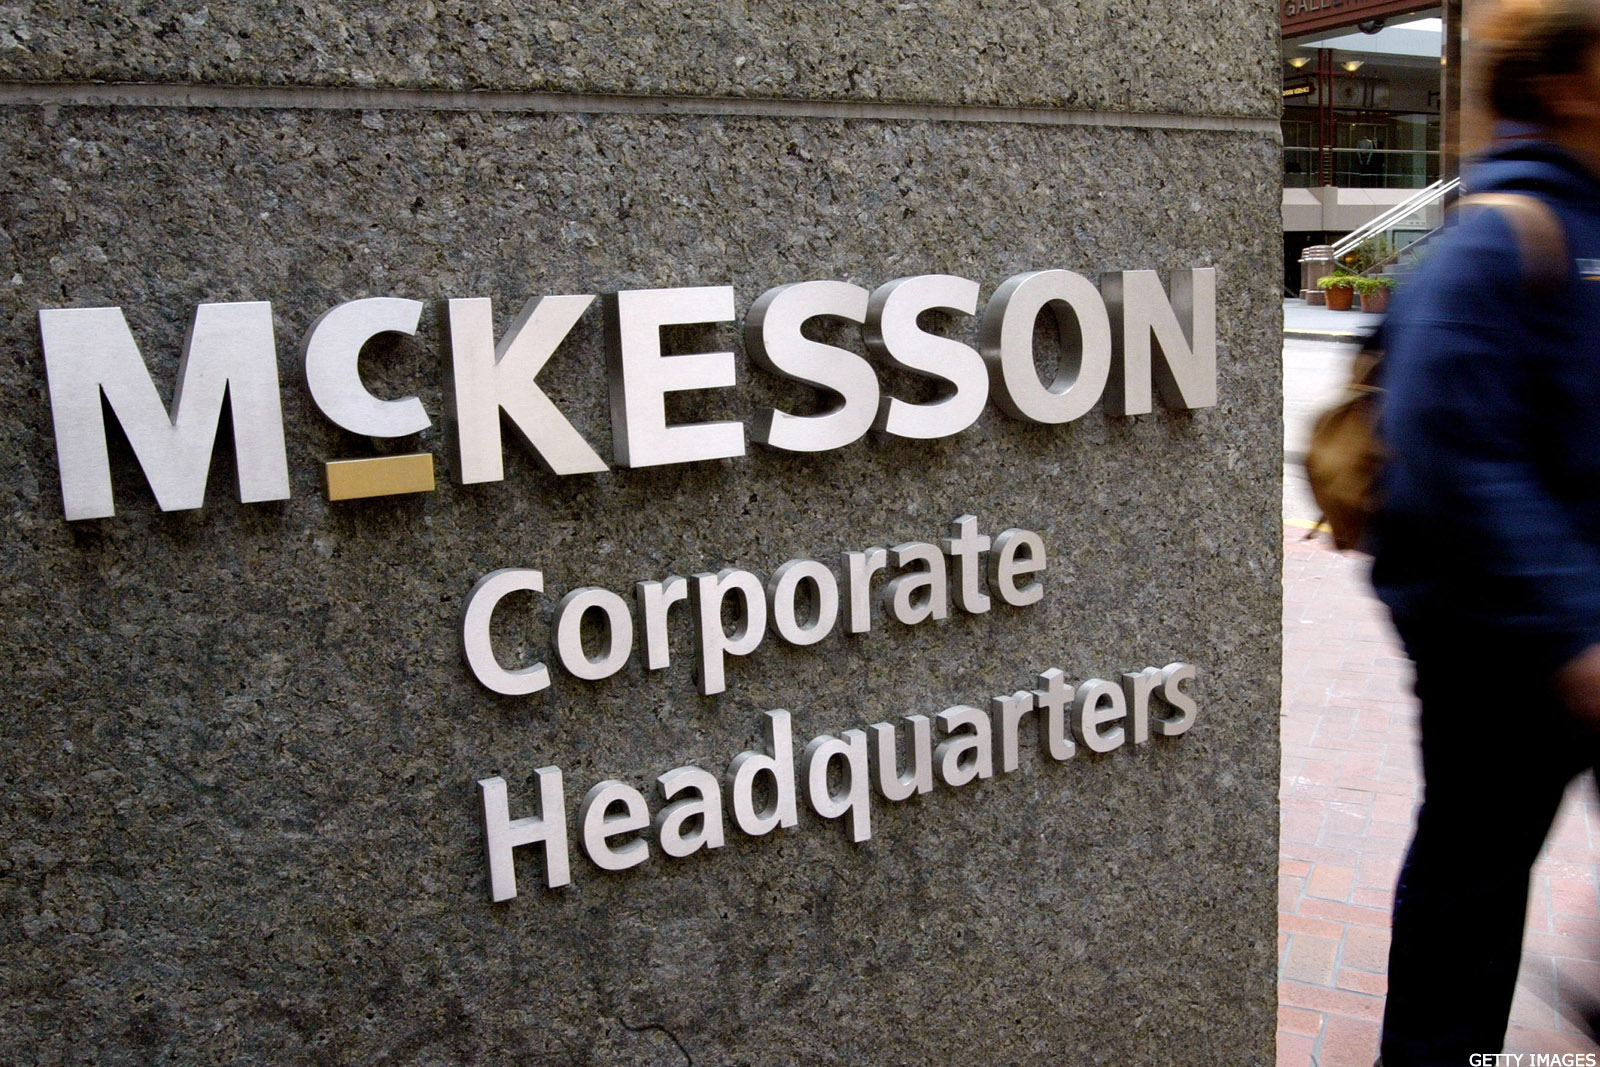 Mckesson Mck Stock Surged Today After Raising Guidance